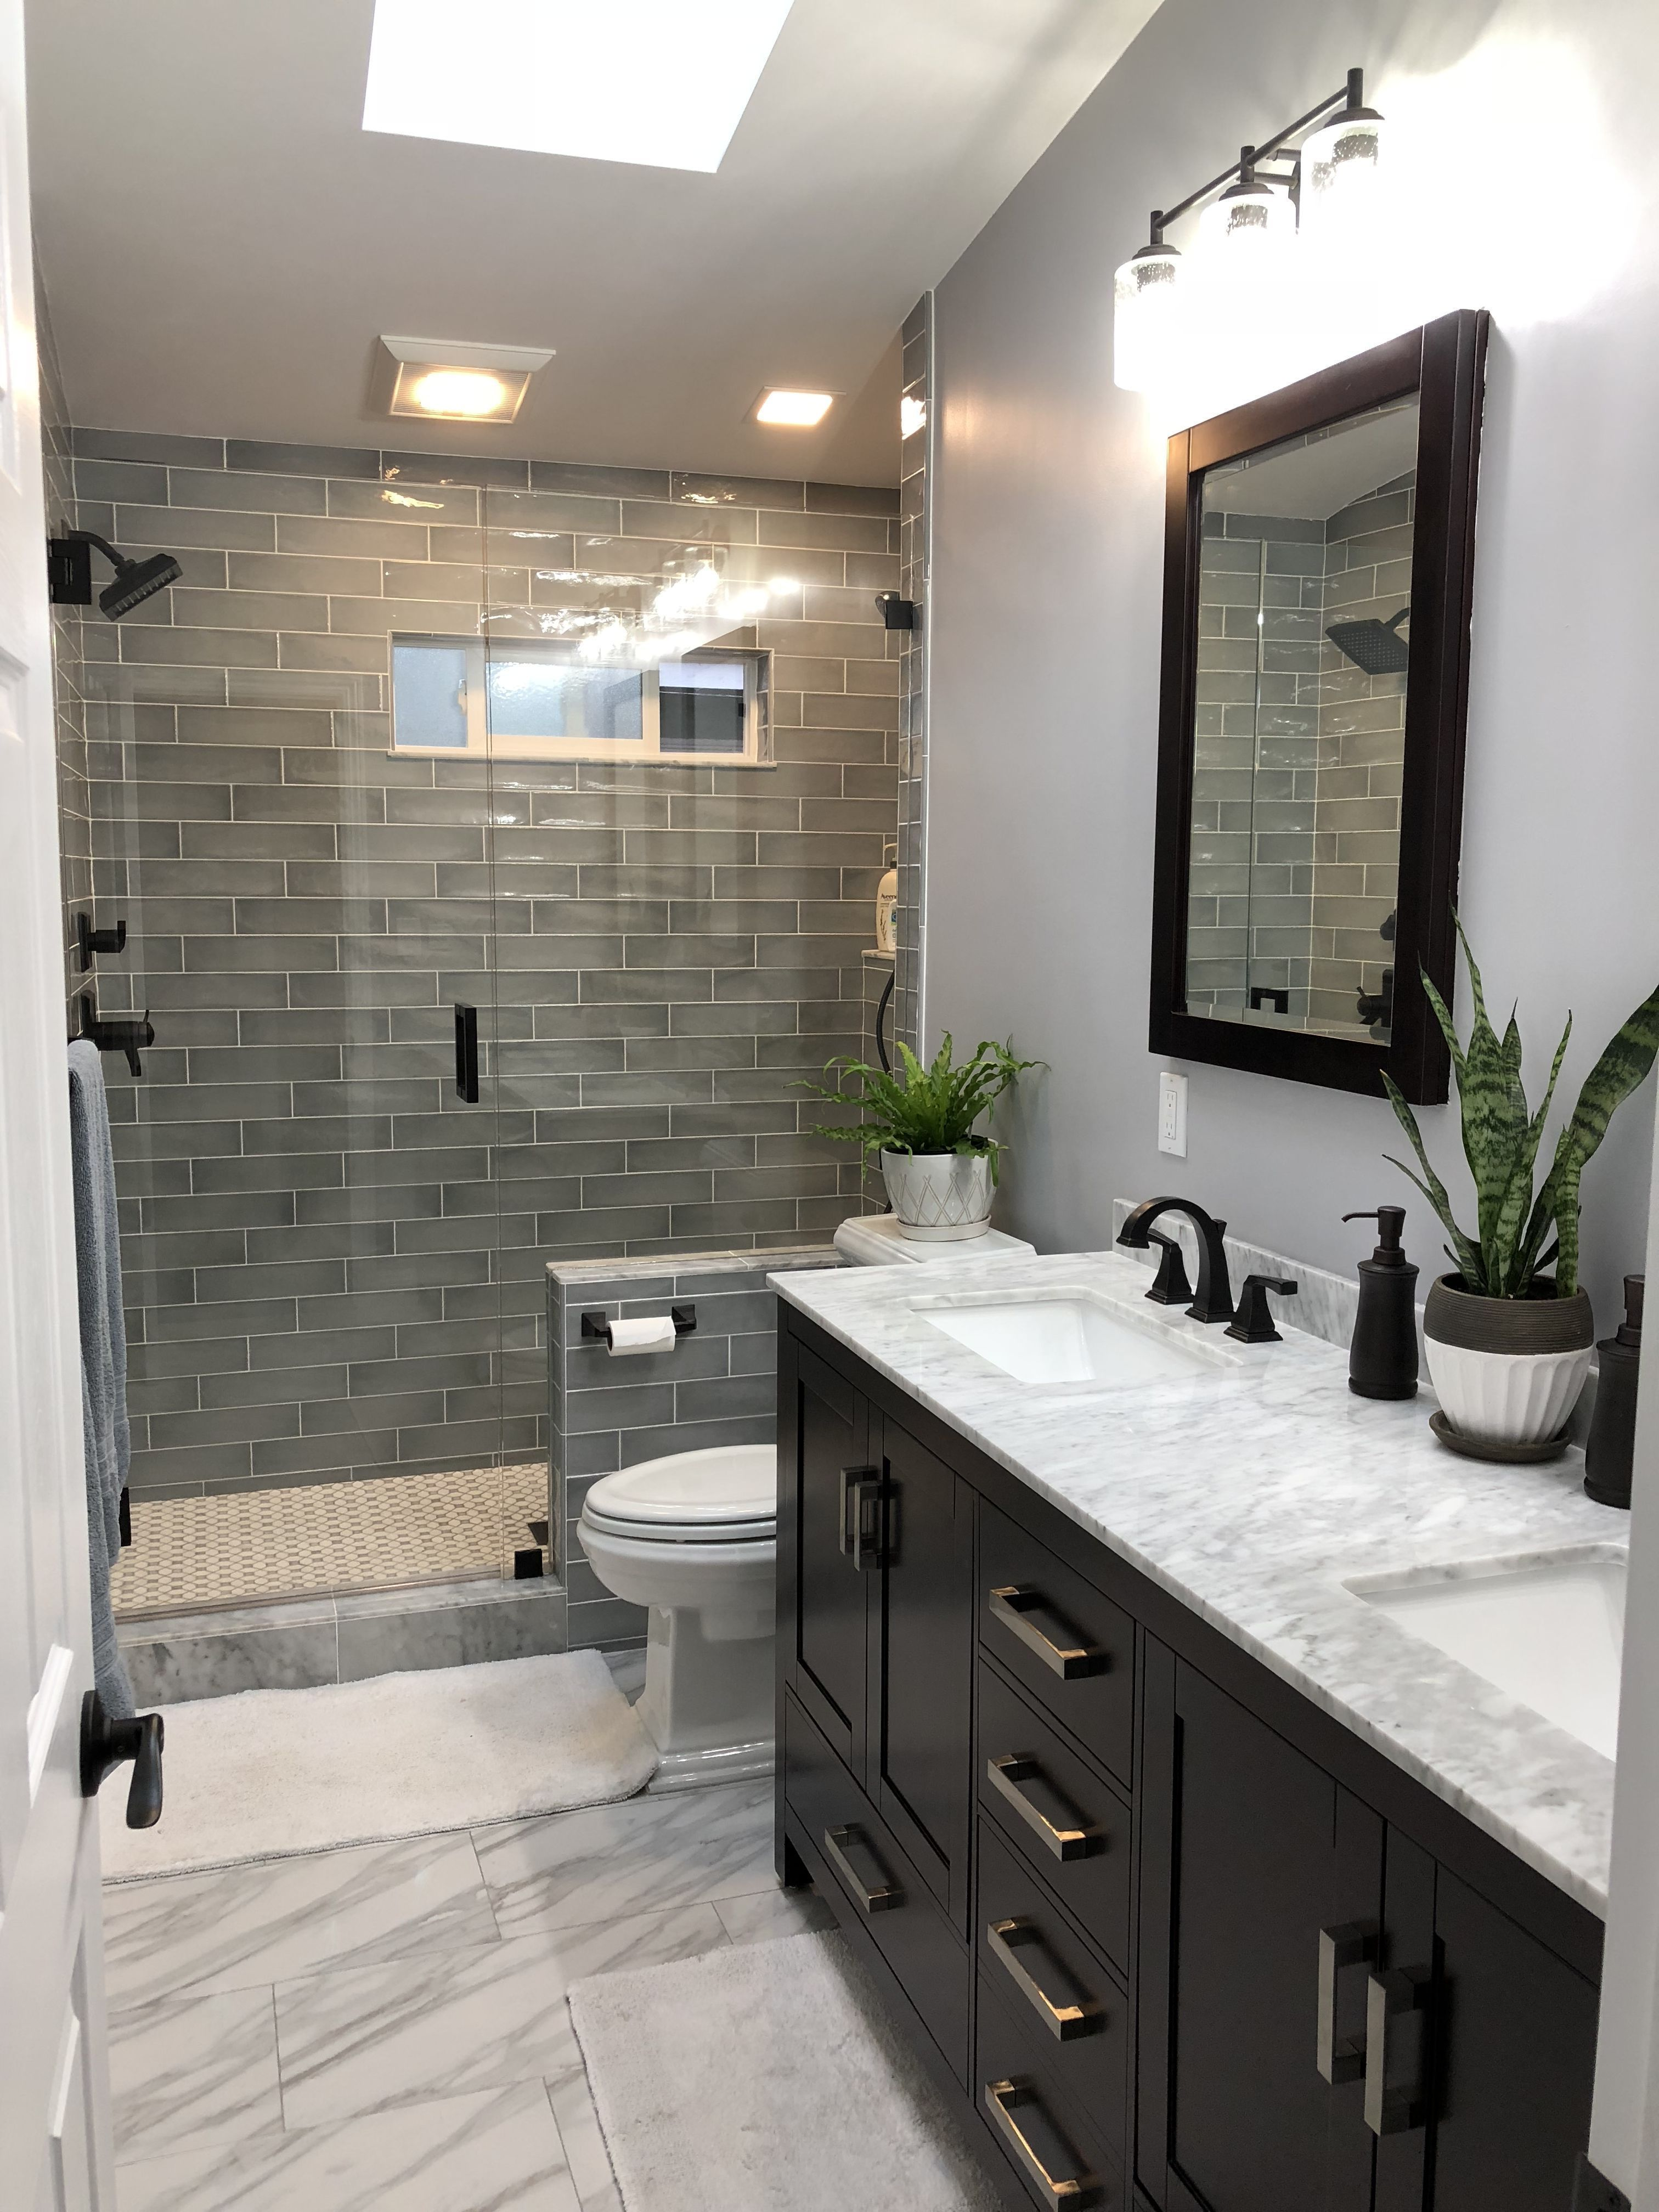 Luxury Bathroom Design Ideas Every Bathroom Remodel Starts With A Style Suggestion From Small Bathroom Remodel Bathroom Design Luxury Bathroom Remodel Master